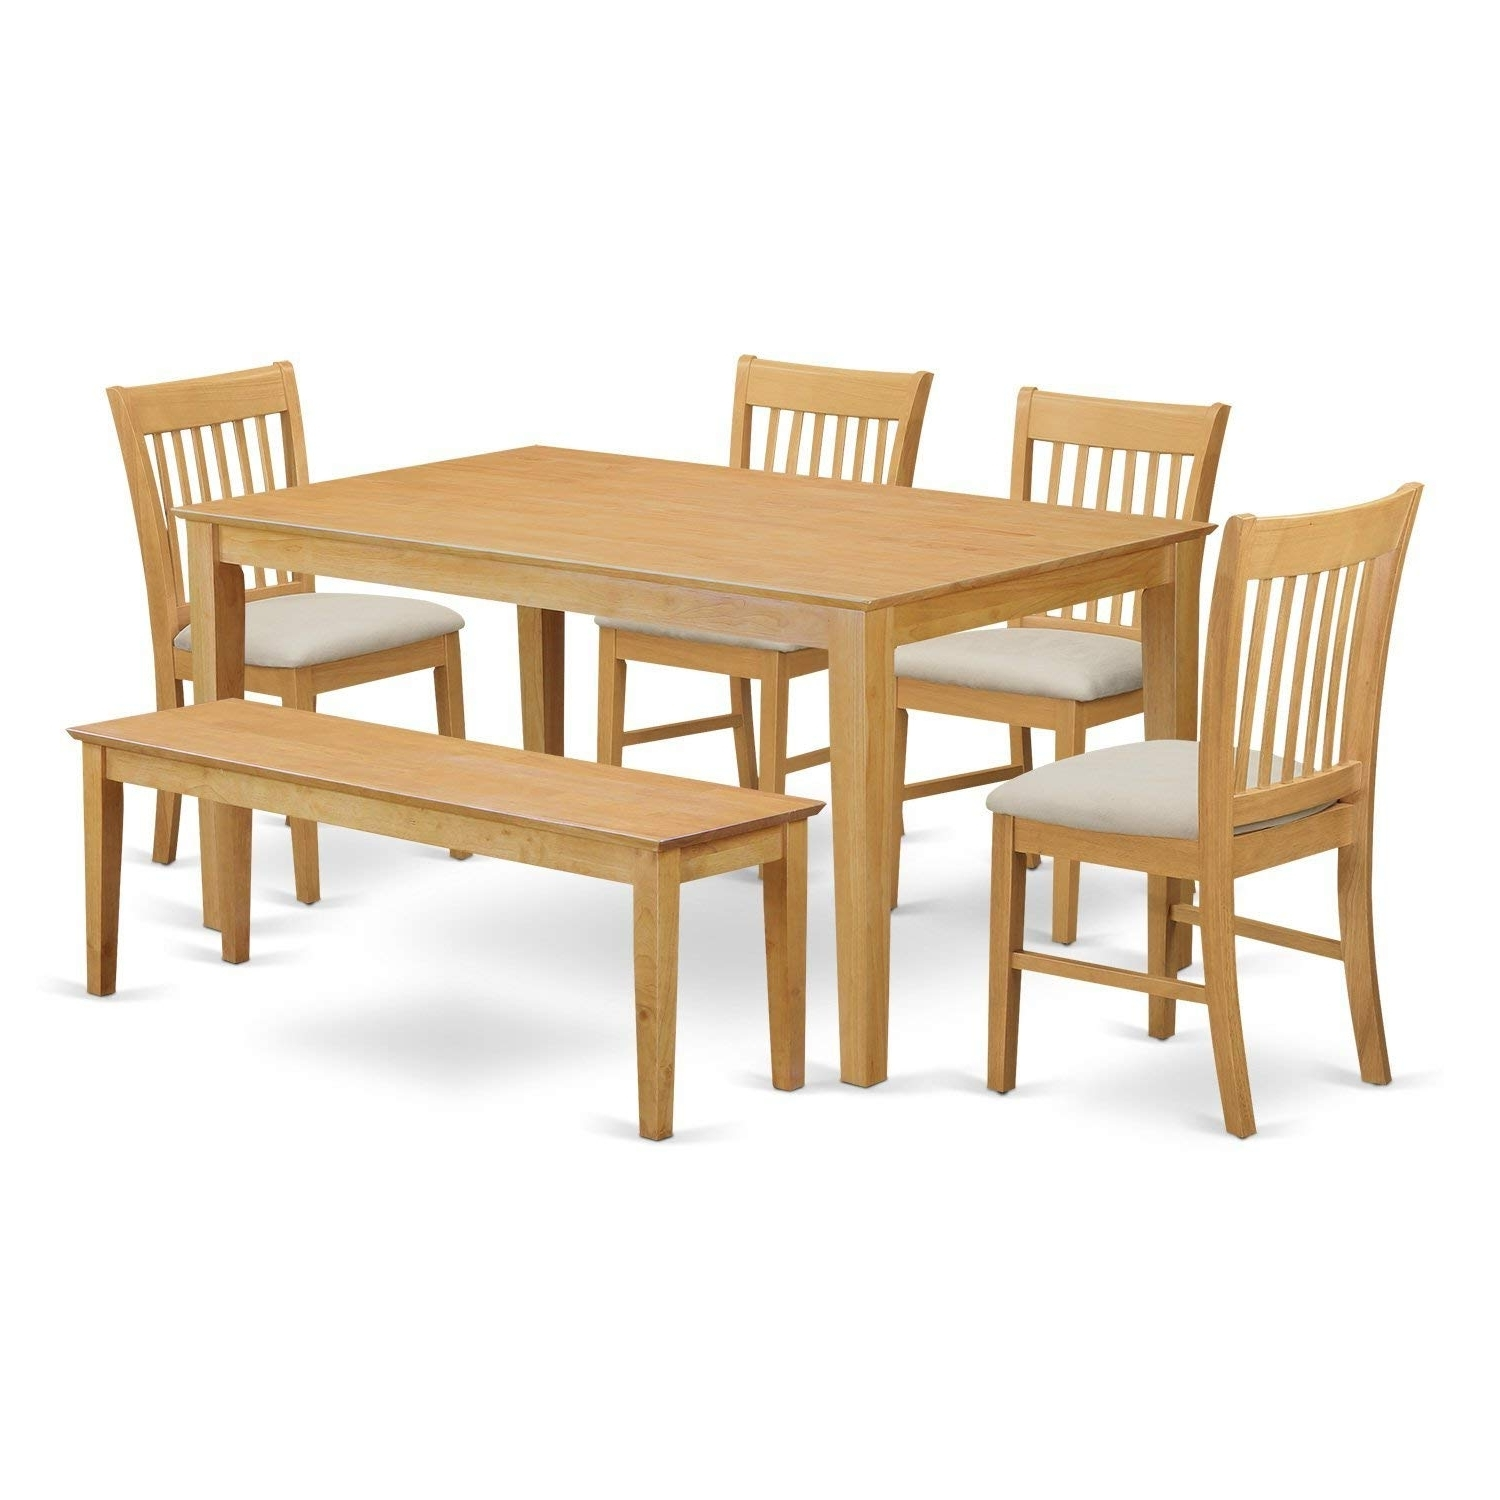 Craftsman 7 Piece Rectangle Extension Dining Sets With Side Chairs With Most Recently Released Amazon: East West Furniture Cano6 Oak W 6 Piece Dining Table Set (View 7 of 25)